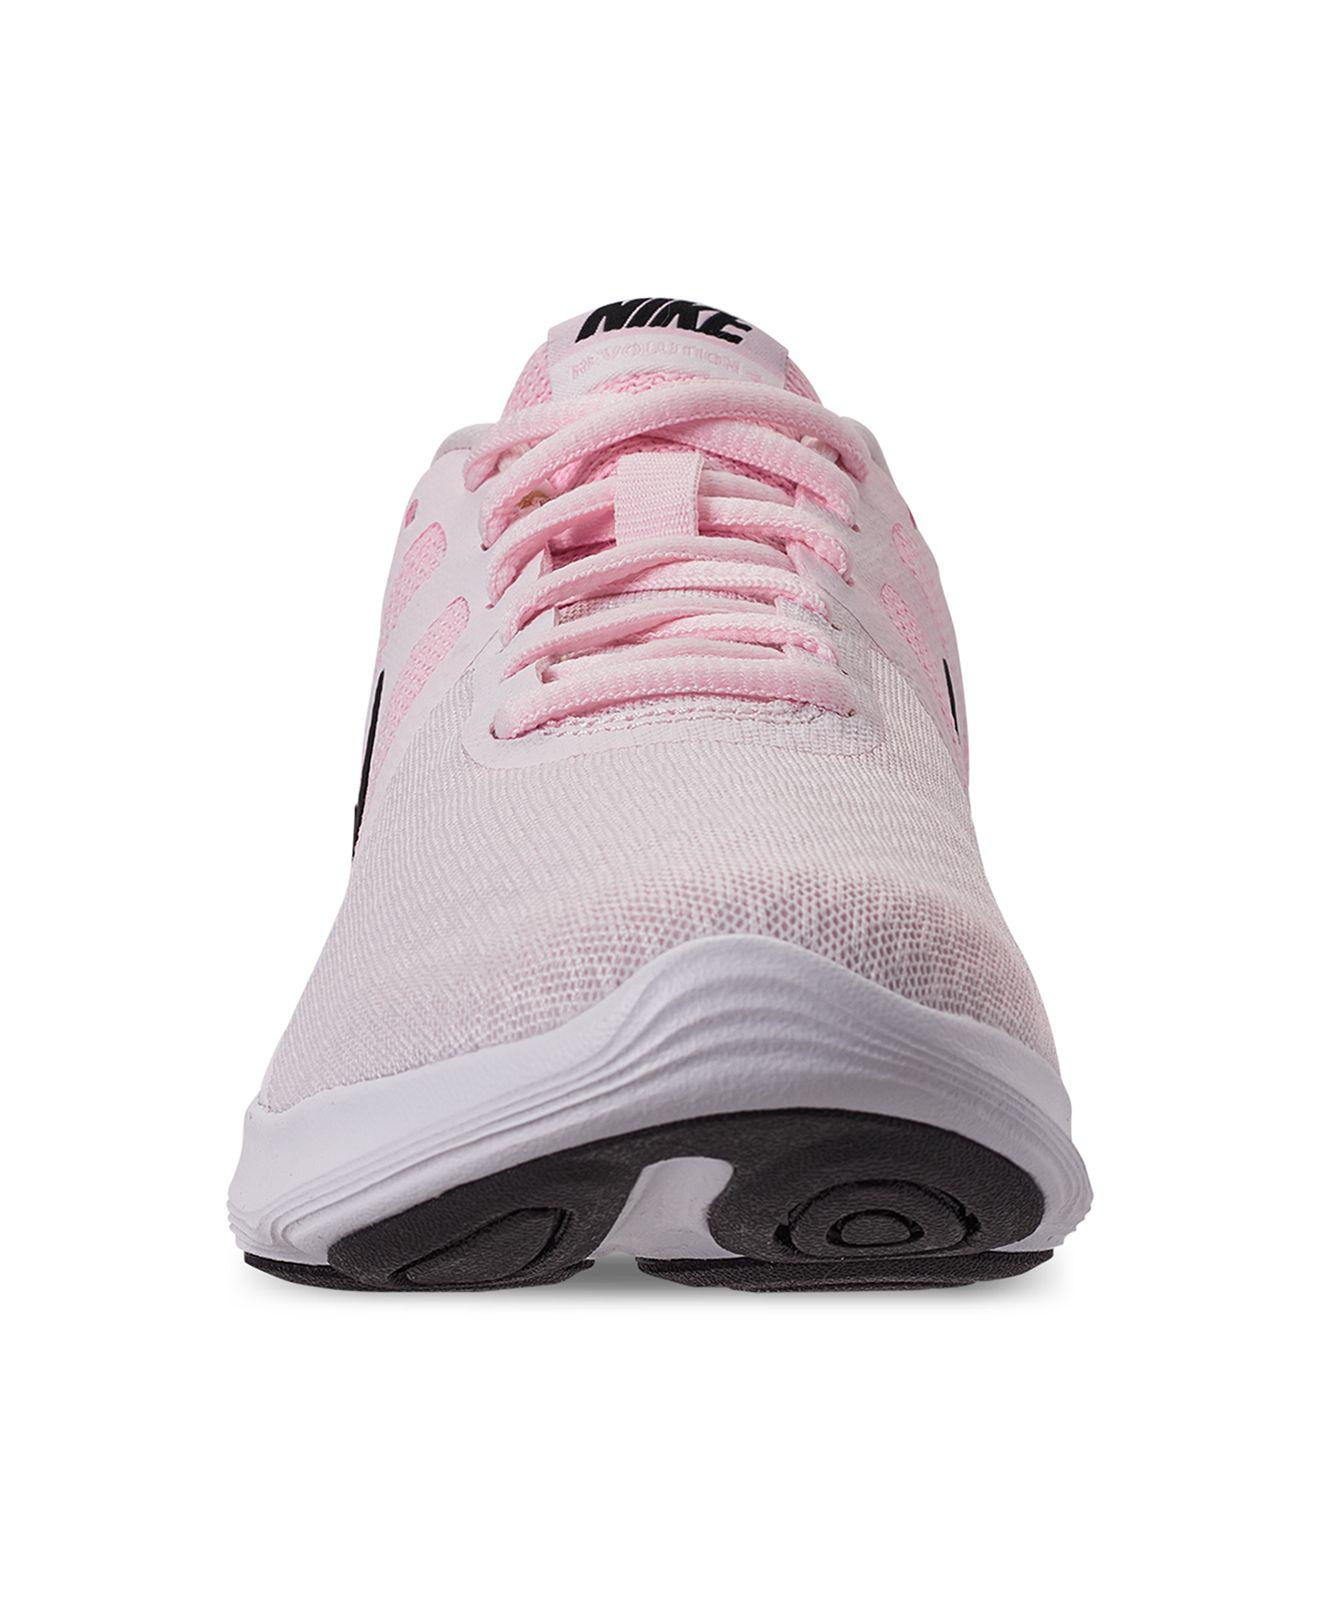 184a0ef975dfc Nike - Pink Revolution 4 Running Sneakers From Finish Line - Lyst. View  fullscreen